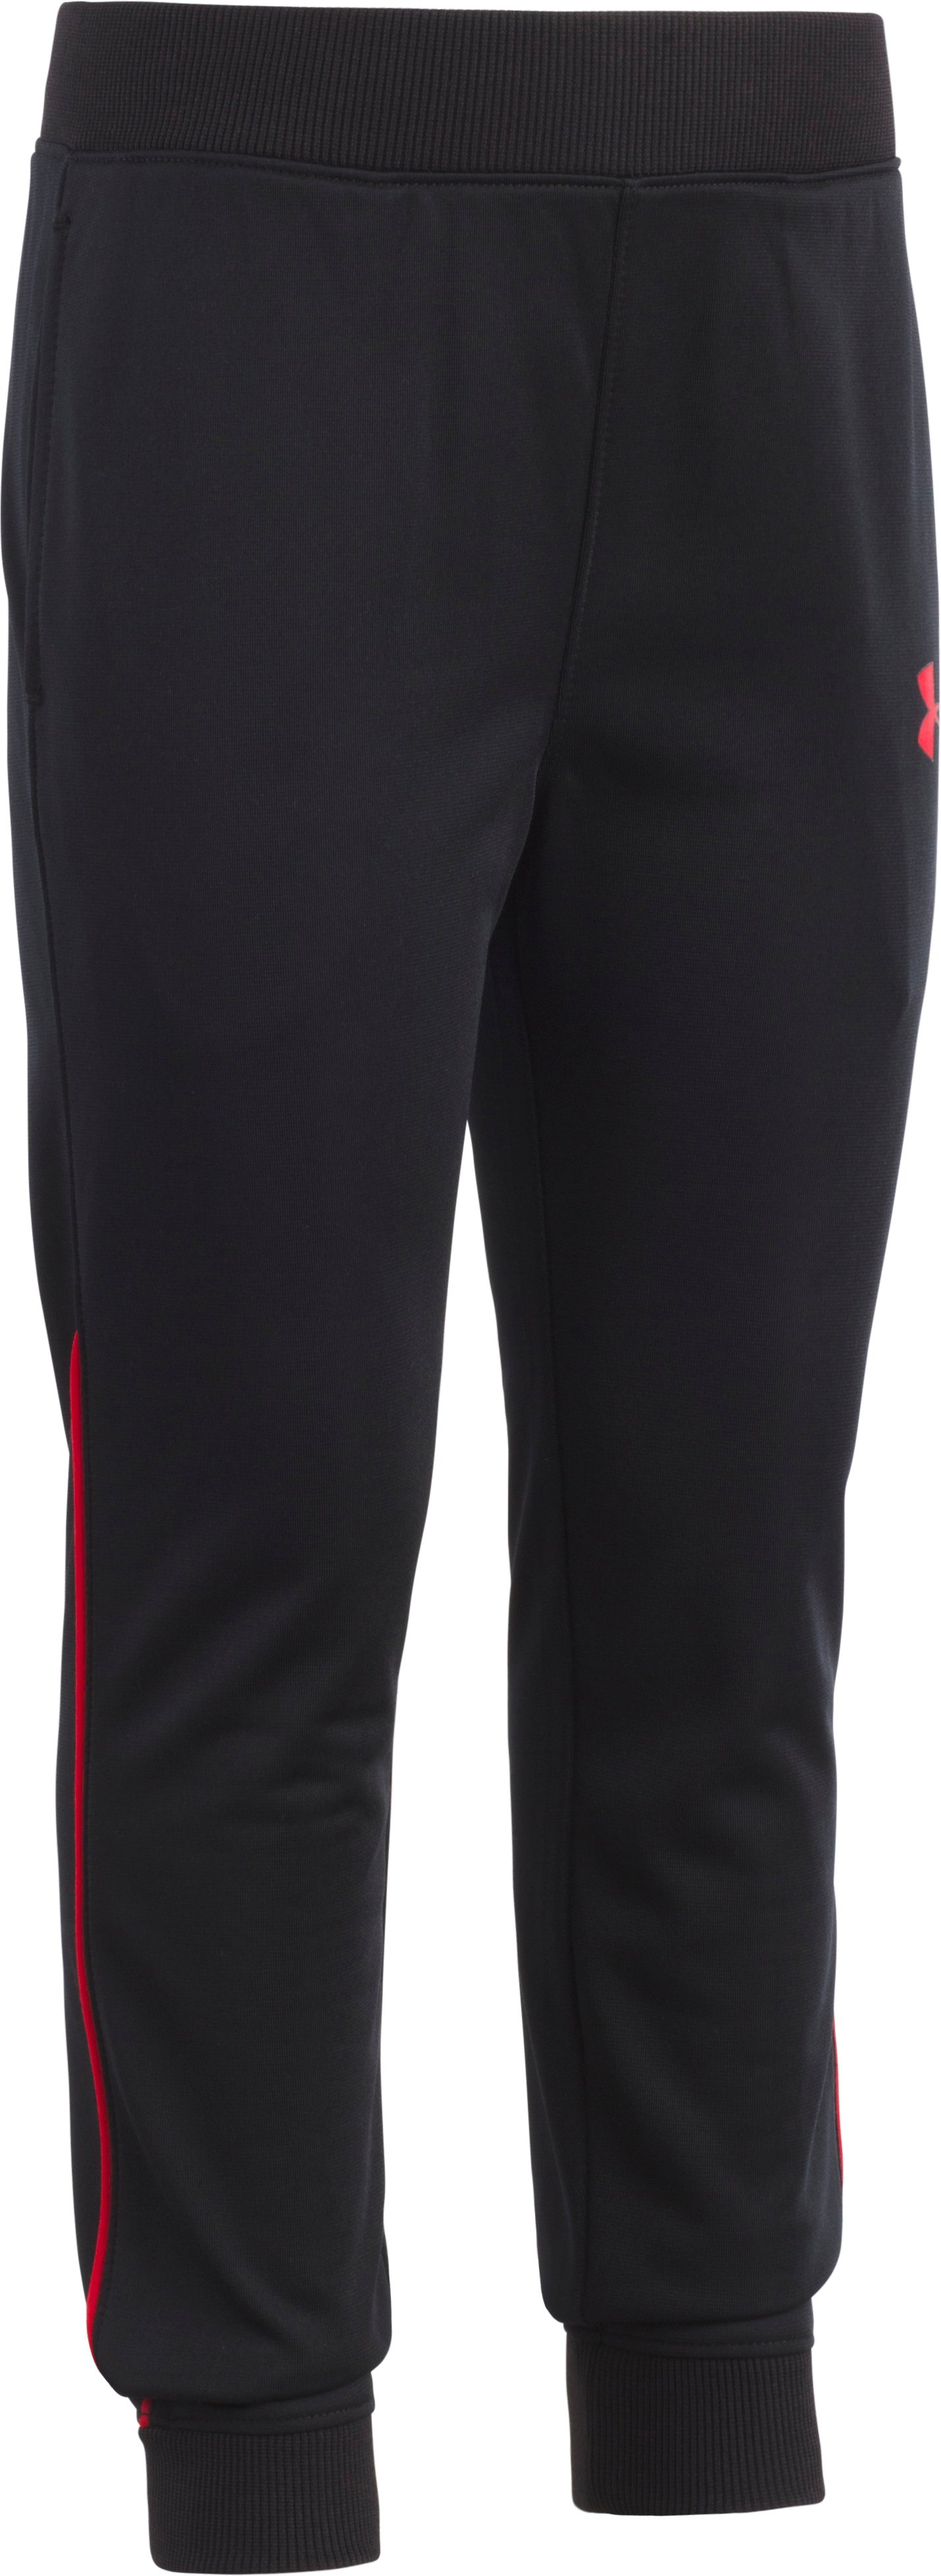 Boys' Pre-School UA Pennant Tapered Pants, Black